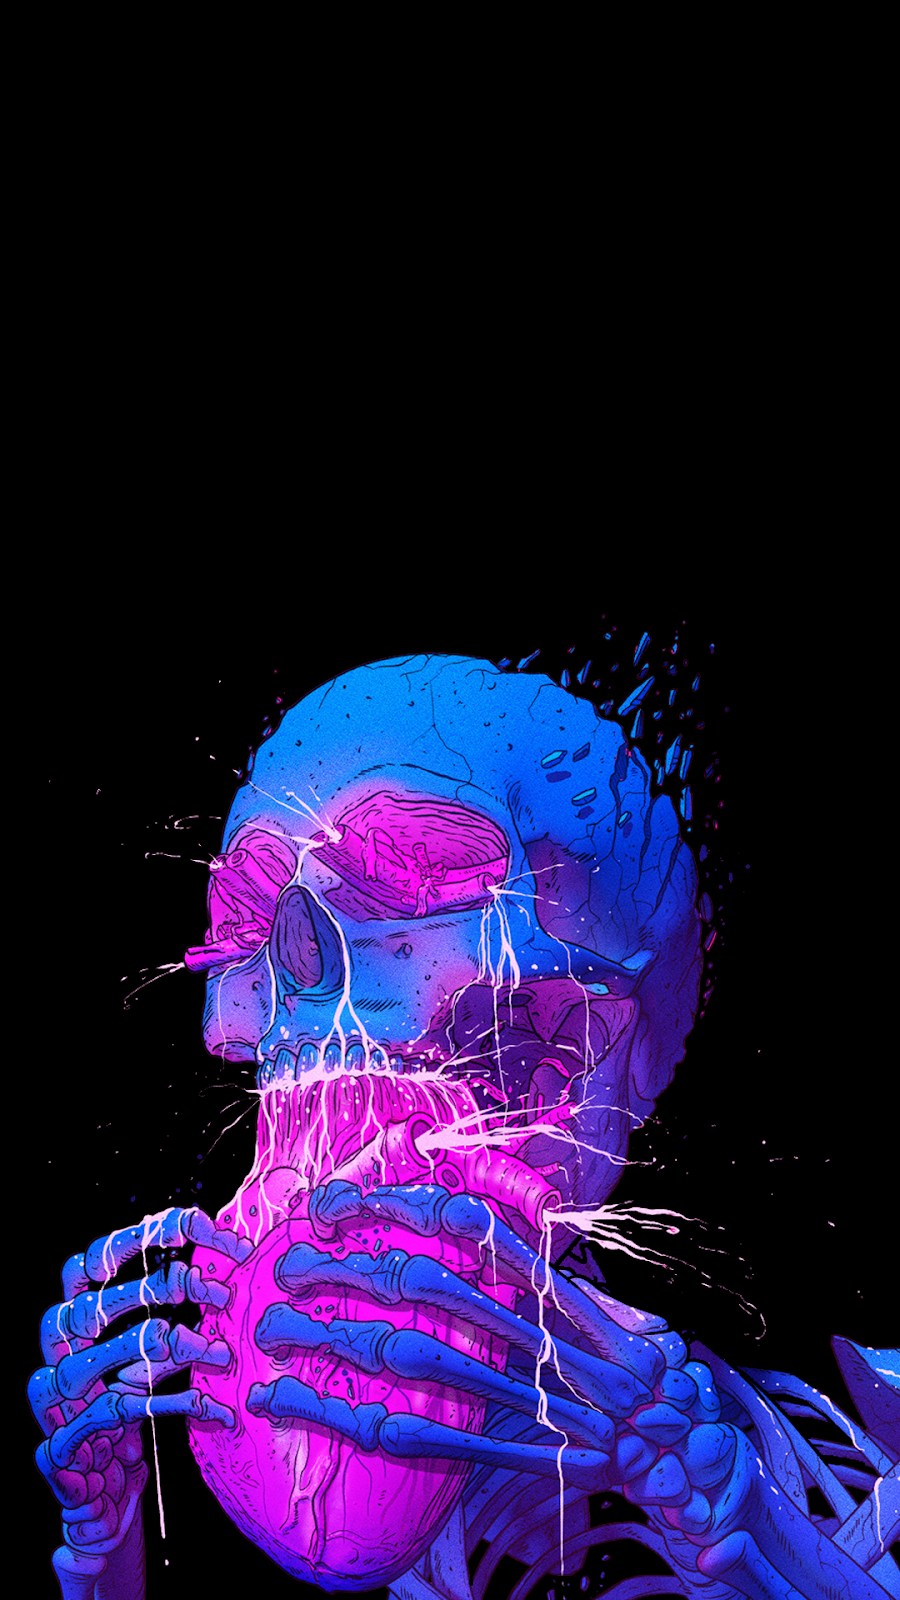 amoled phone wallpaper skull